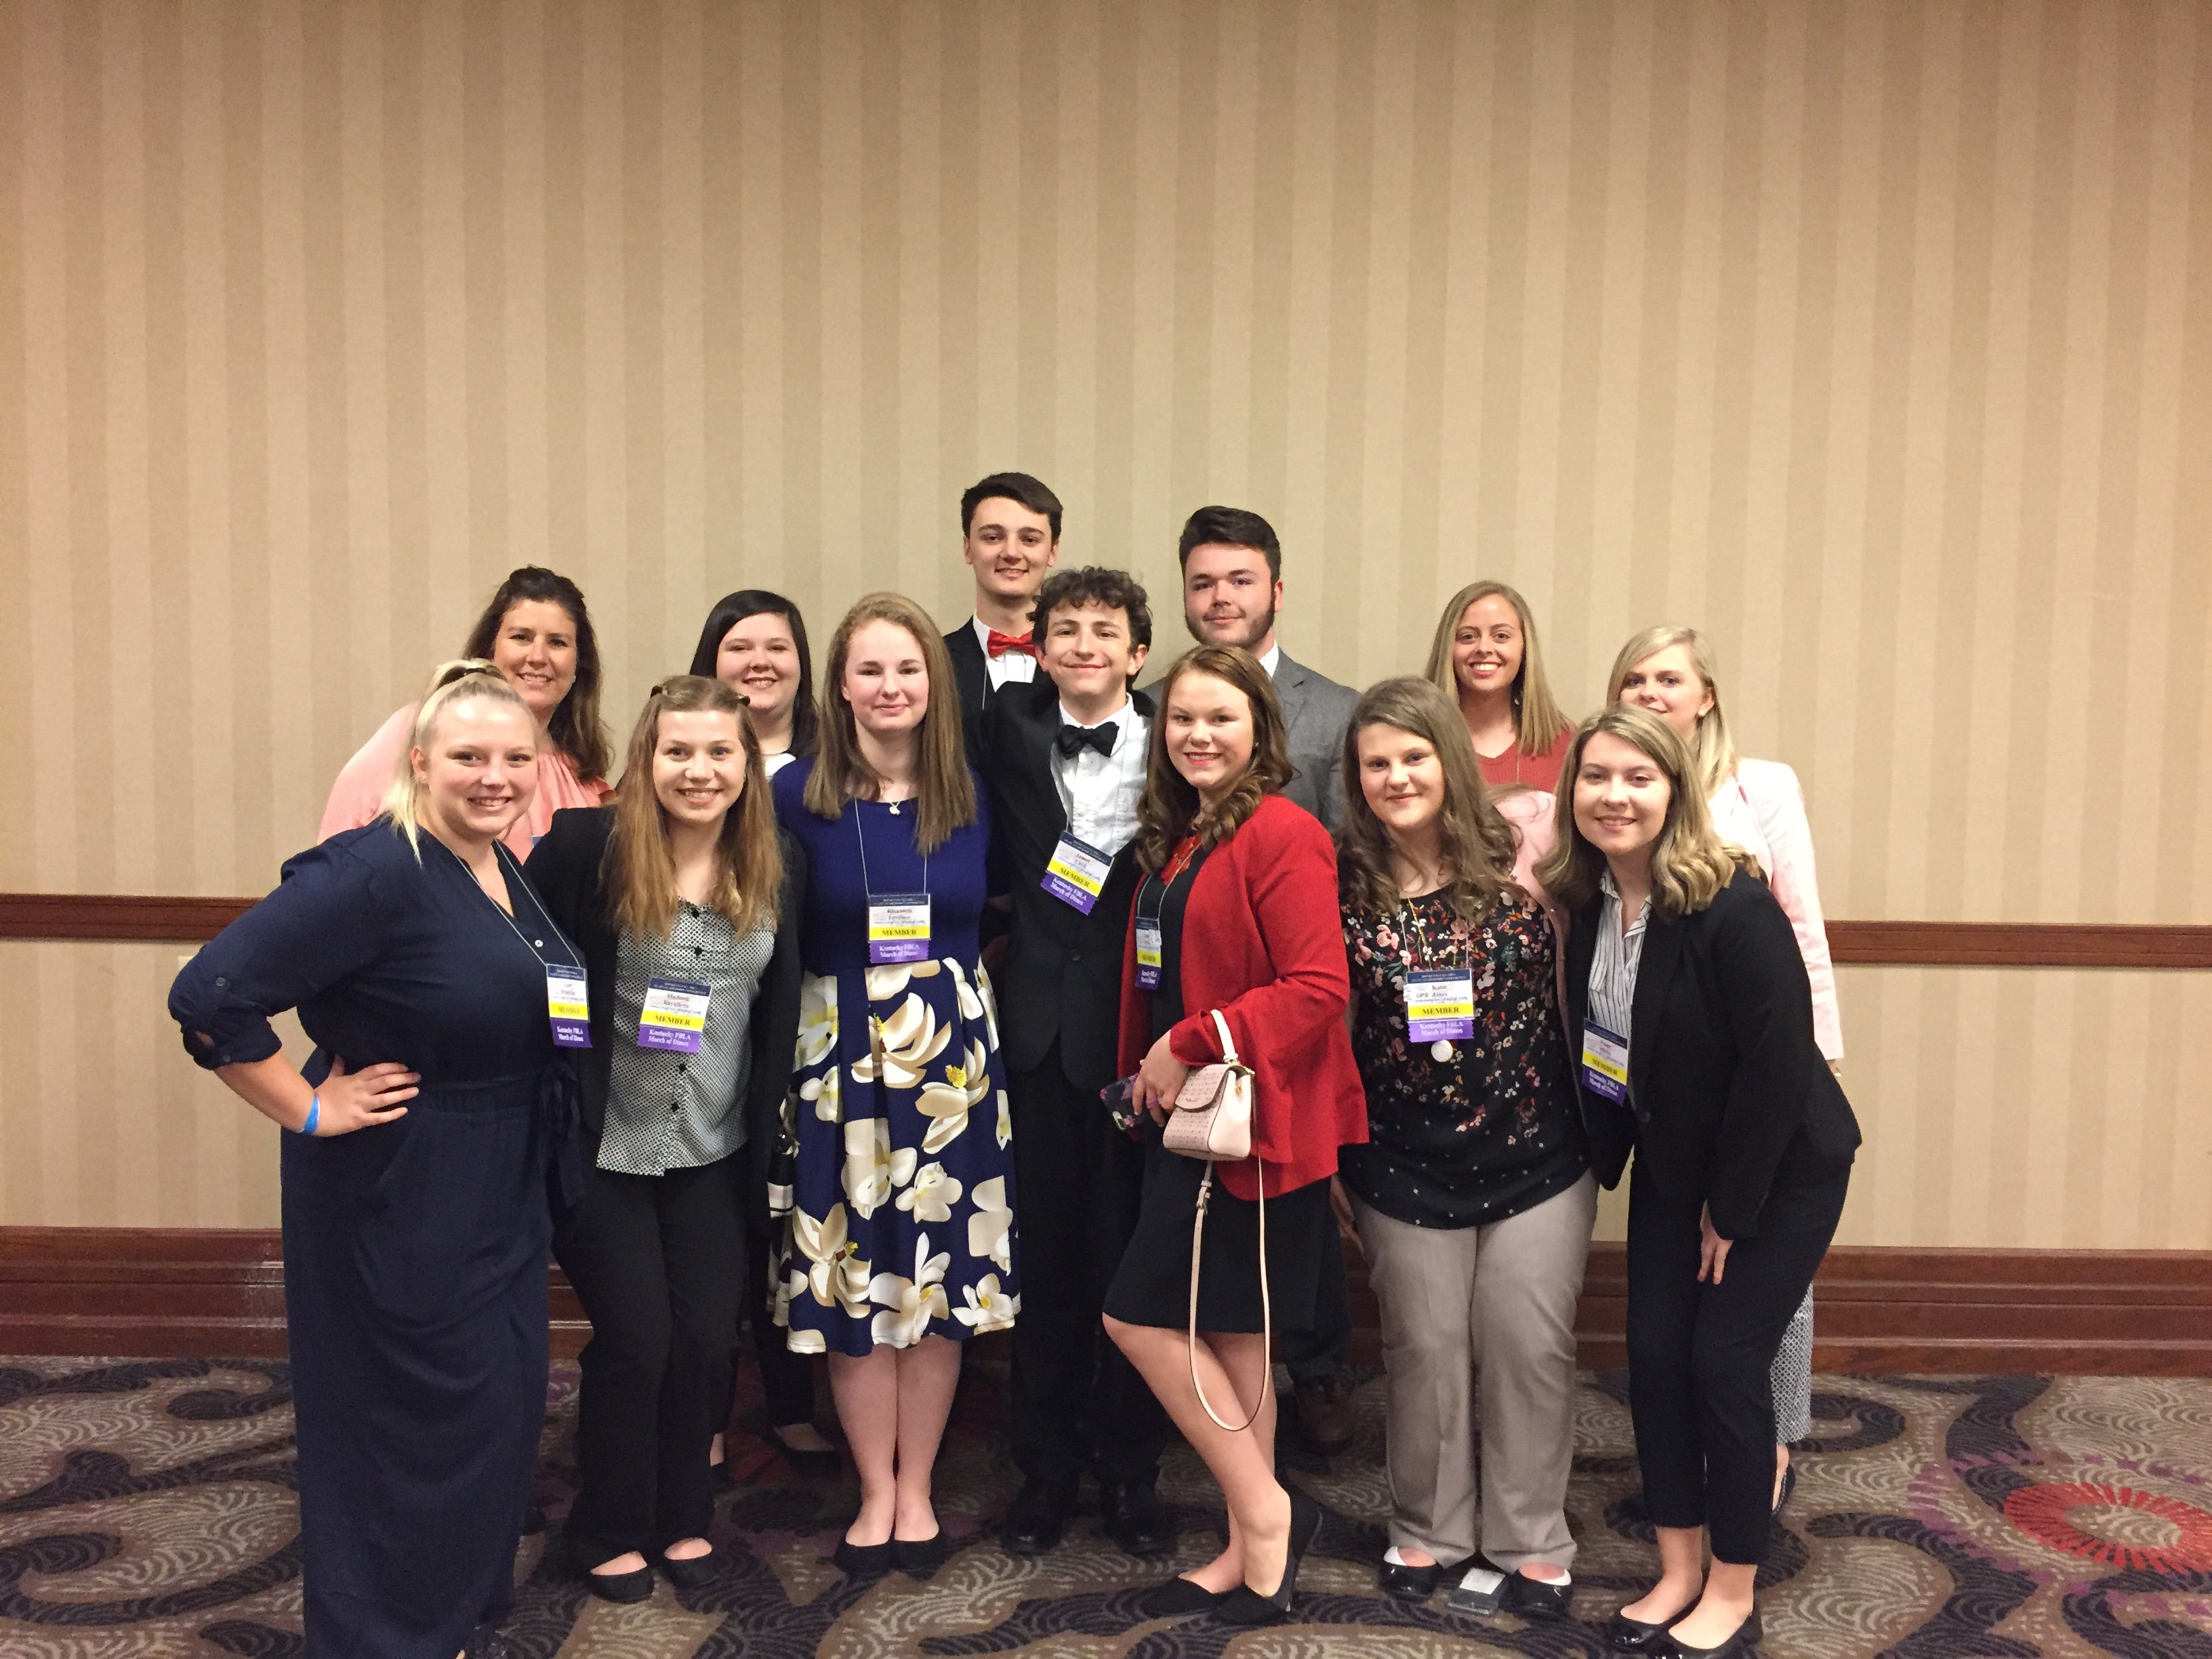 On April 15-17, 2019, 12 members of Clinton County ATC's chapter of Future Business Leaders of America attended the State Leadership Conference at the Galt House Hotel in Louisville, KY.